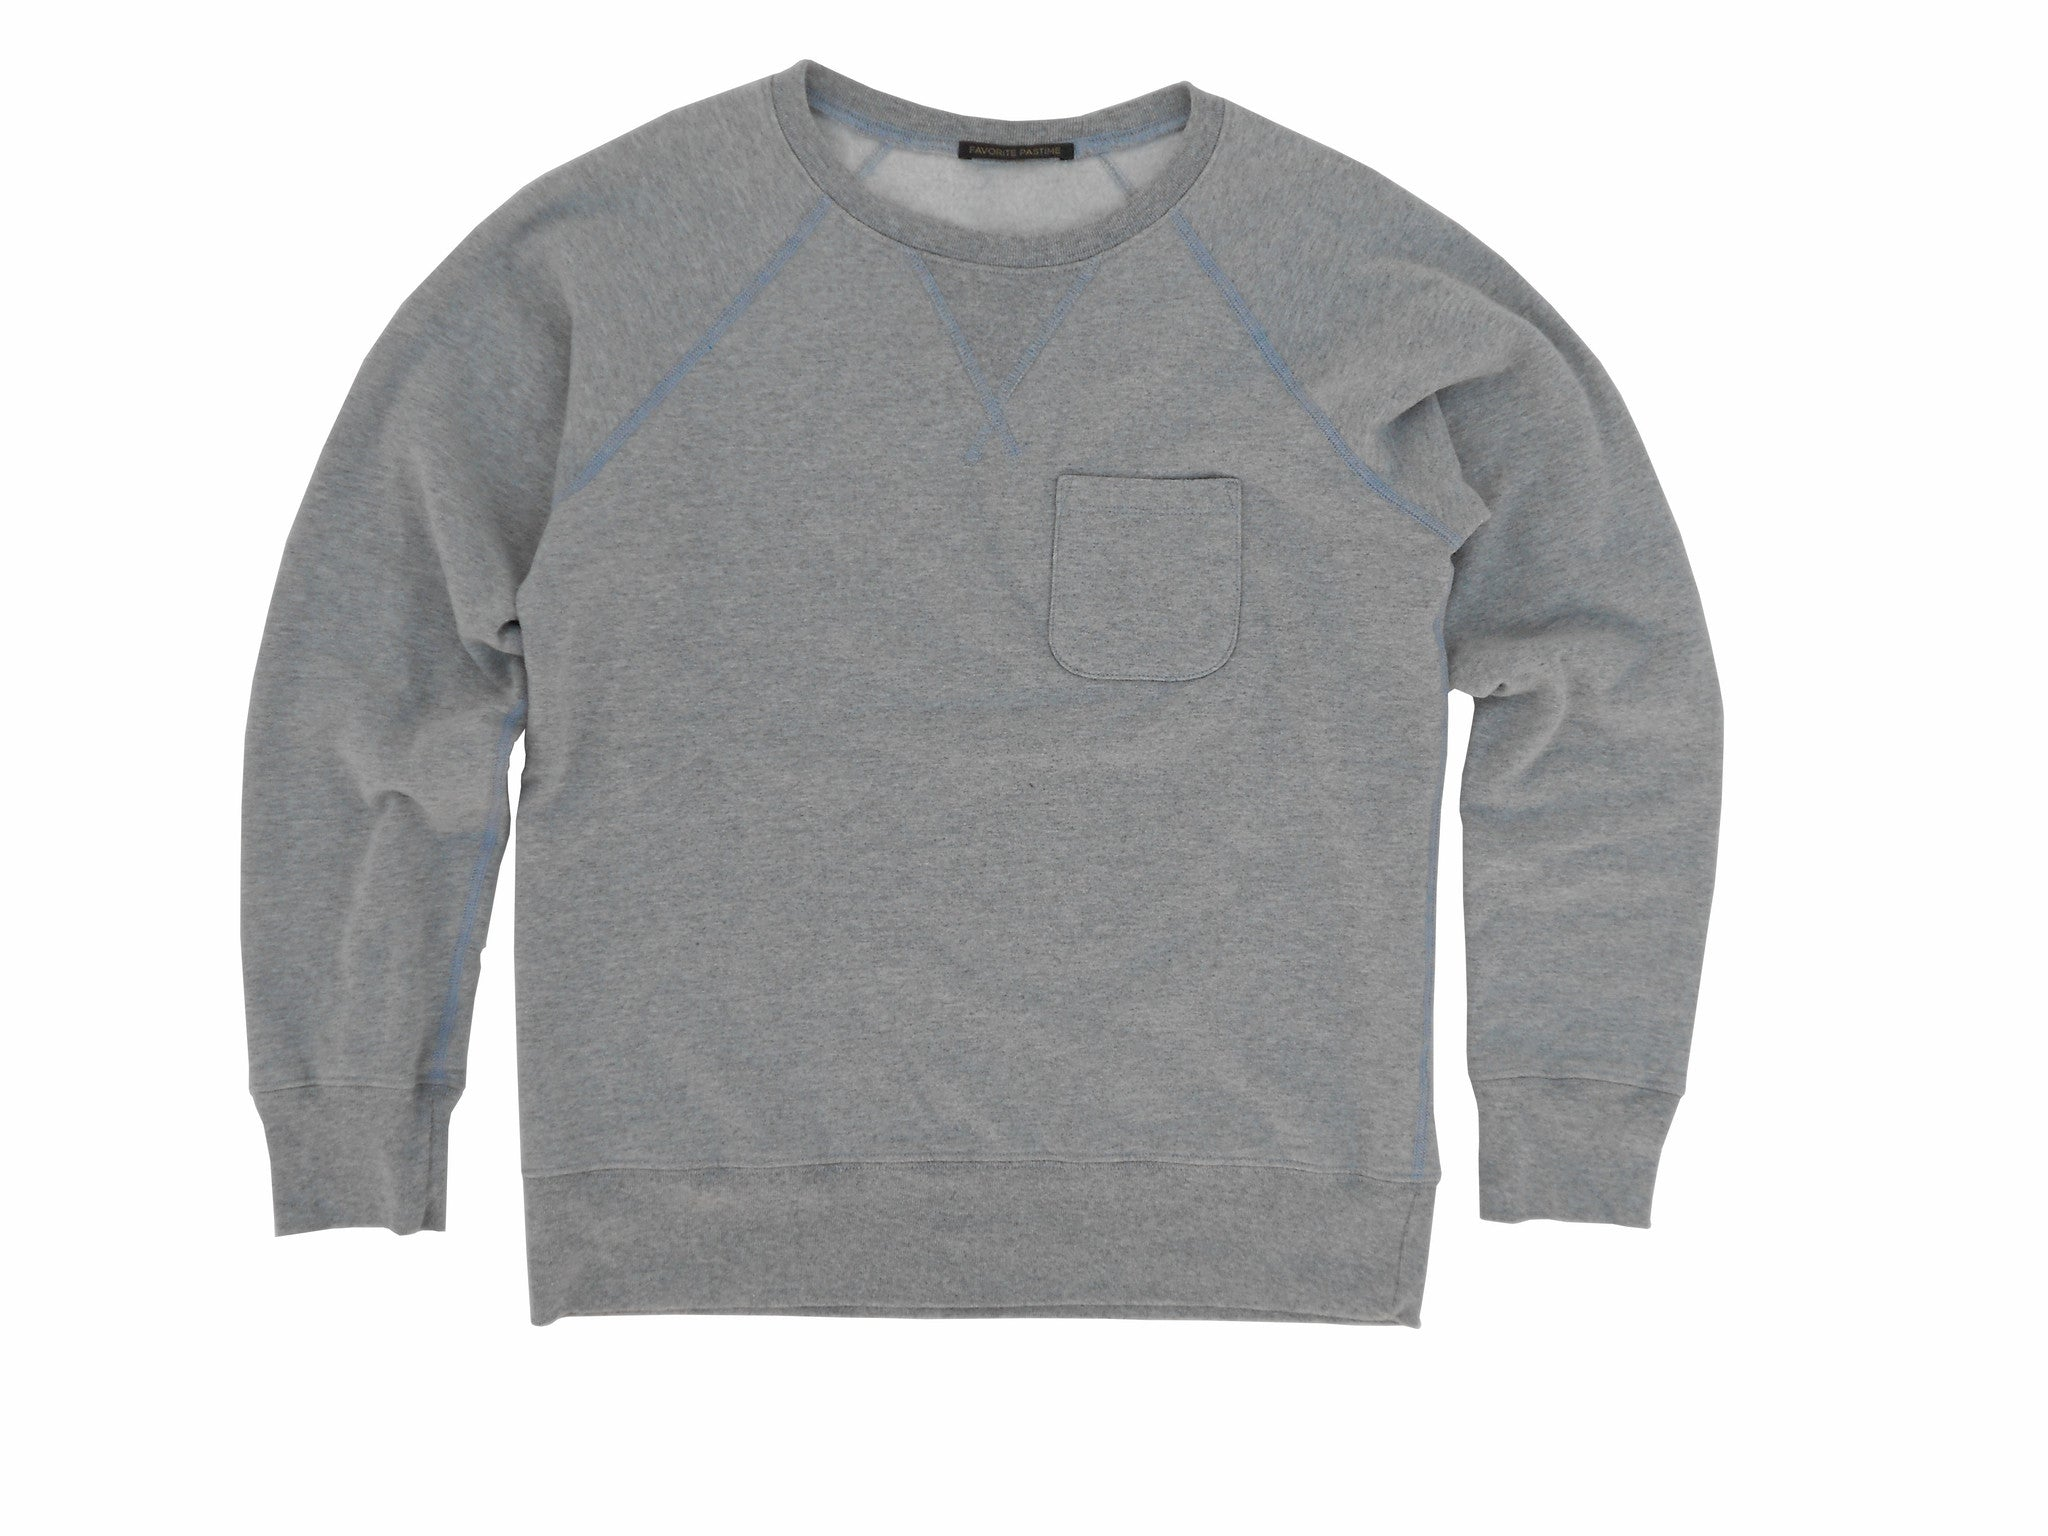 FAVORITE PASTIME BONFIRE BEACH REGLAN Sweatshirt